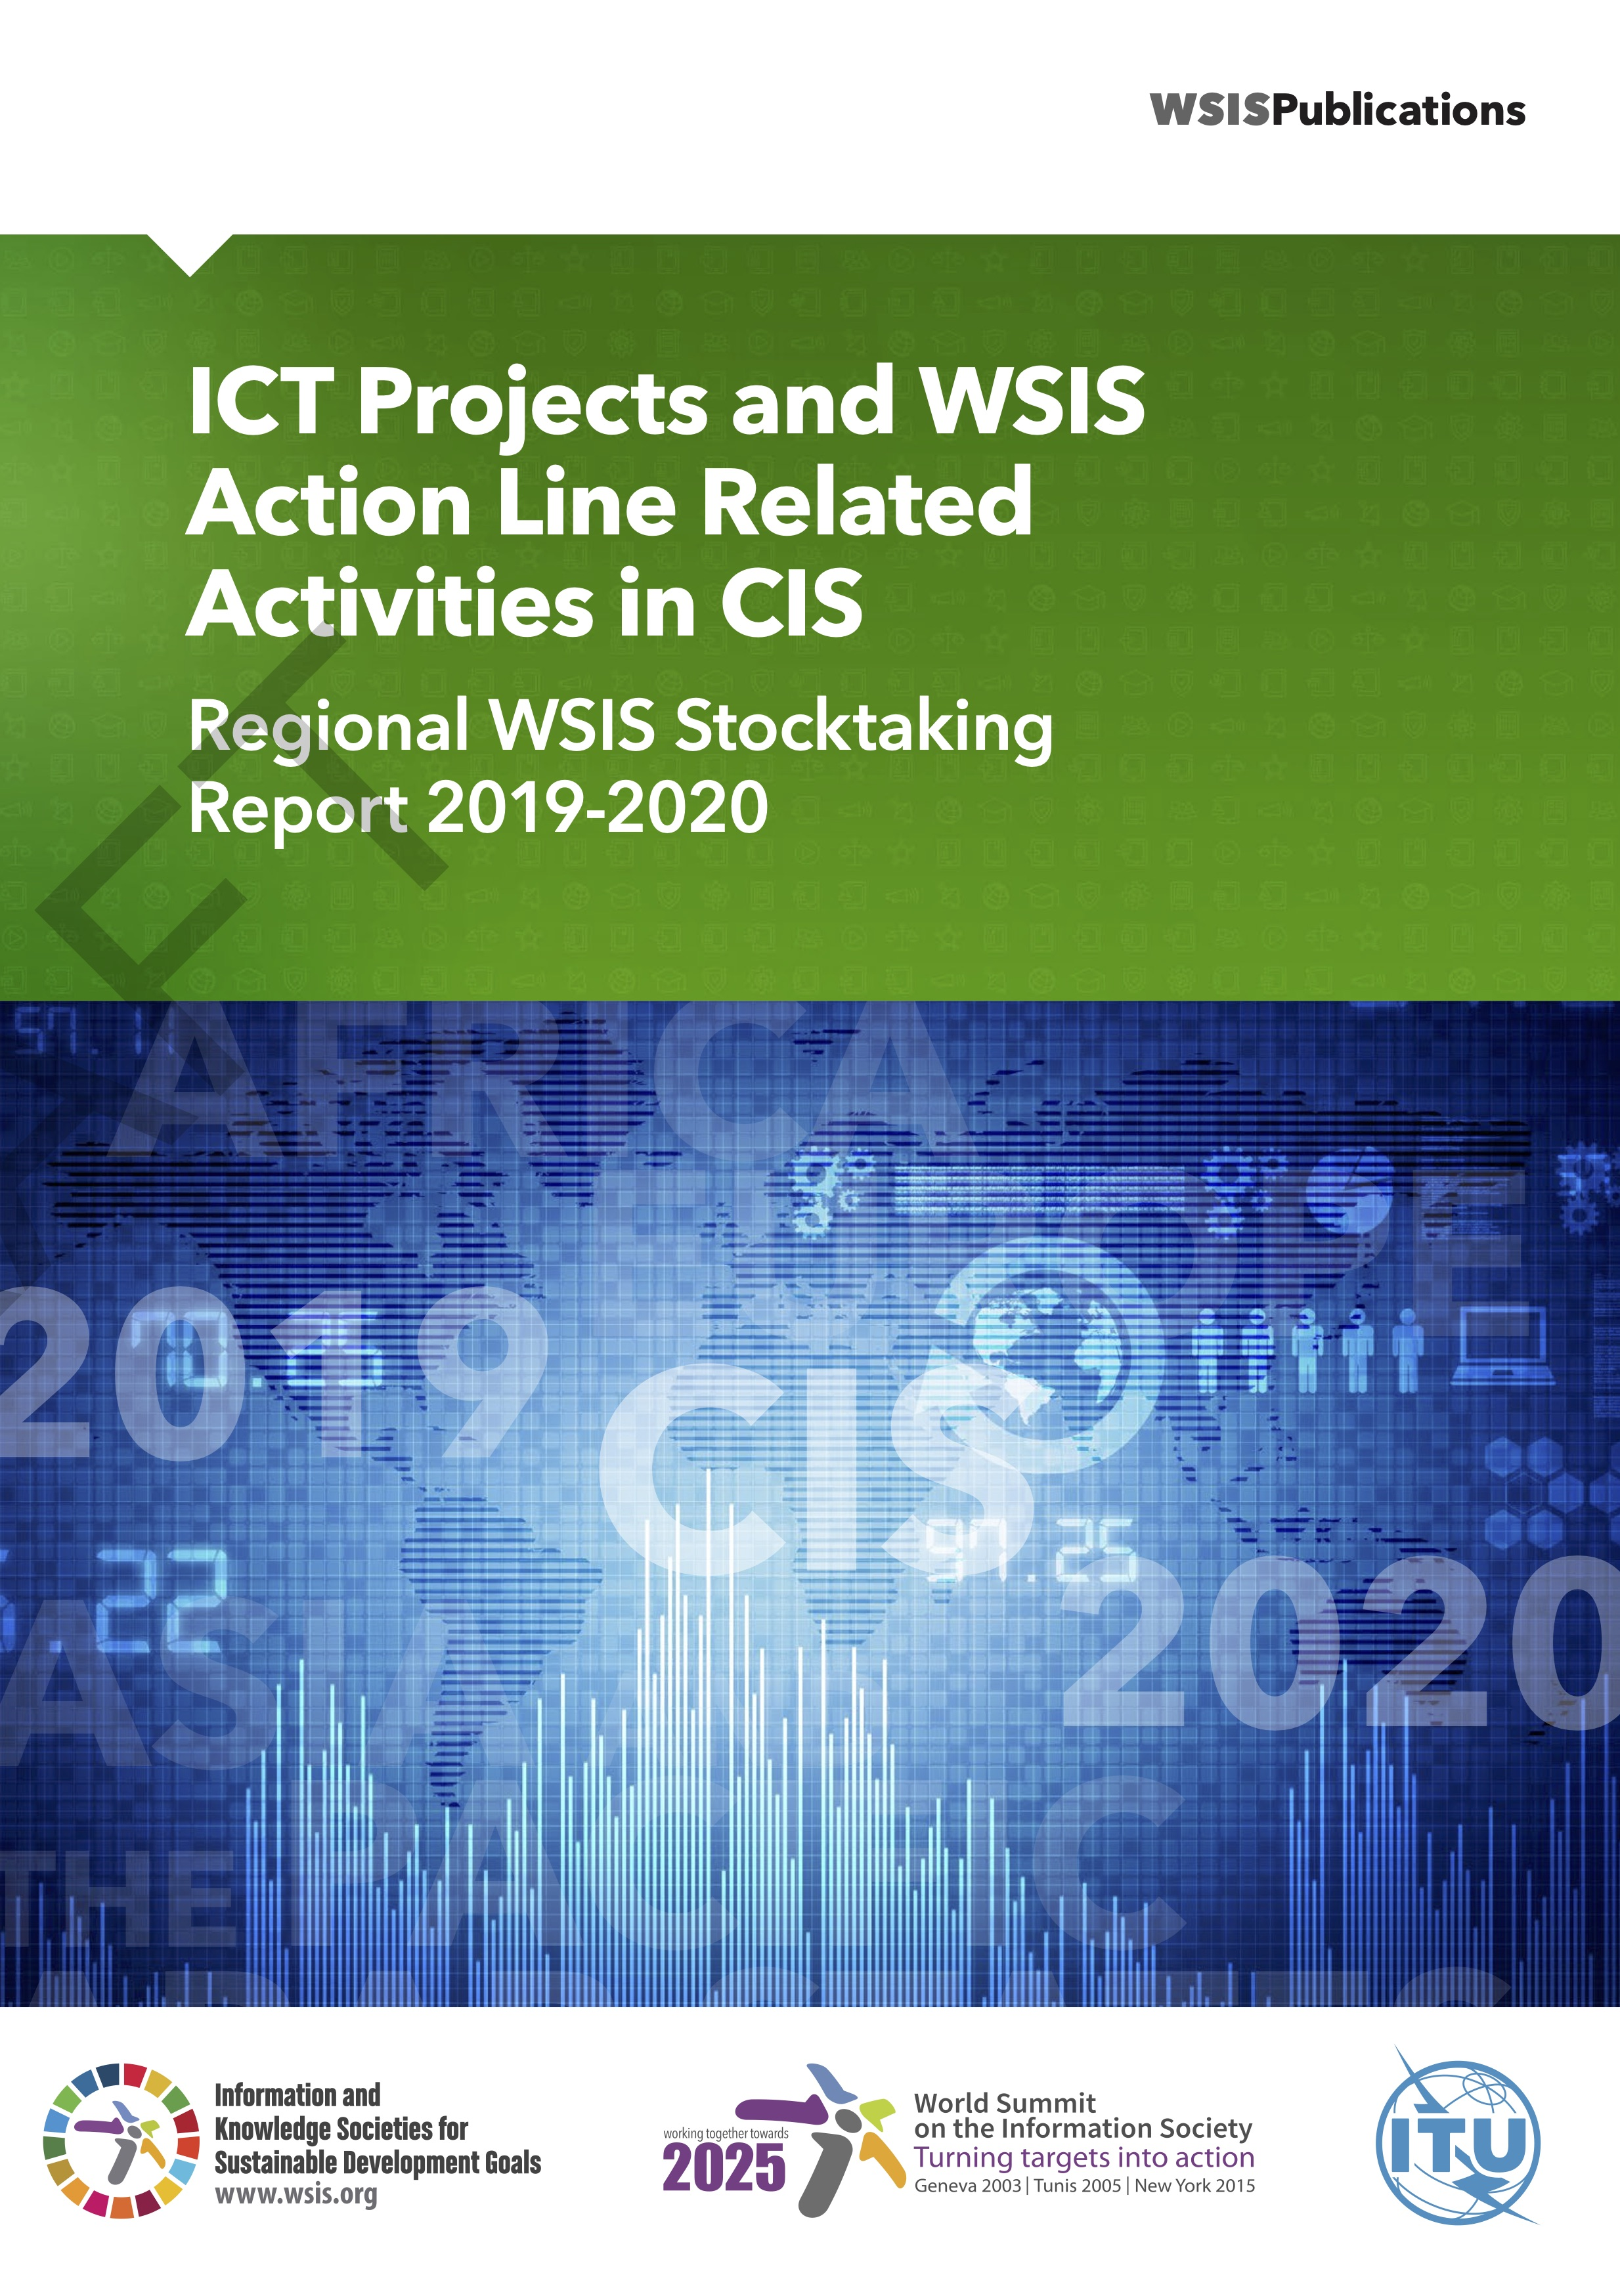 Regional WSIS Stocktaking Report 2019-2020 — CIS